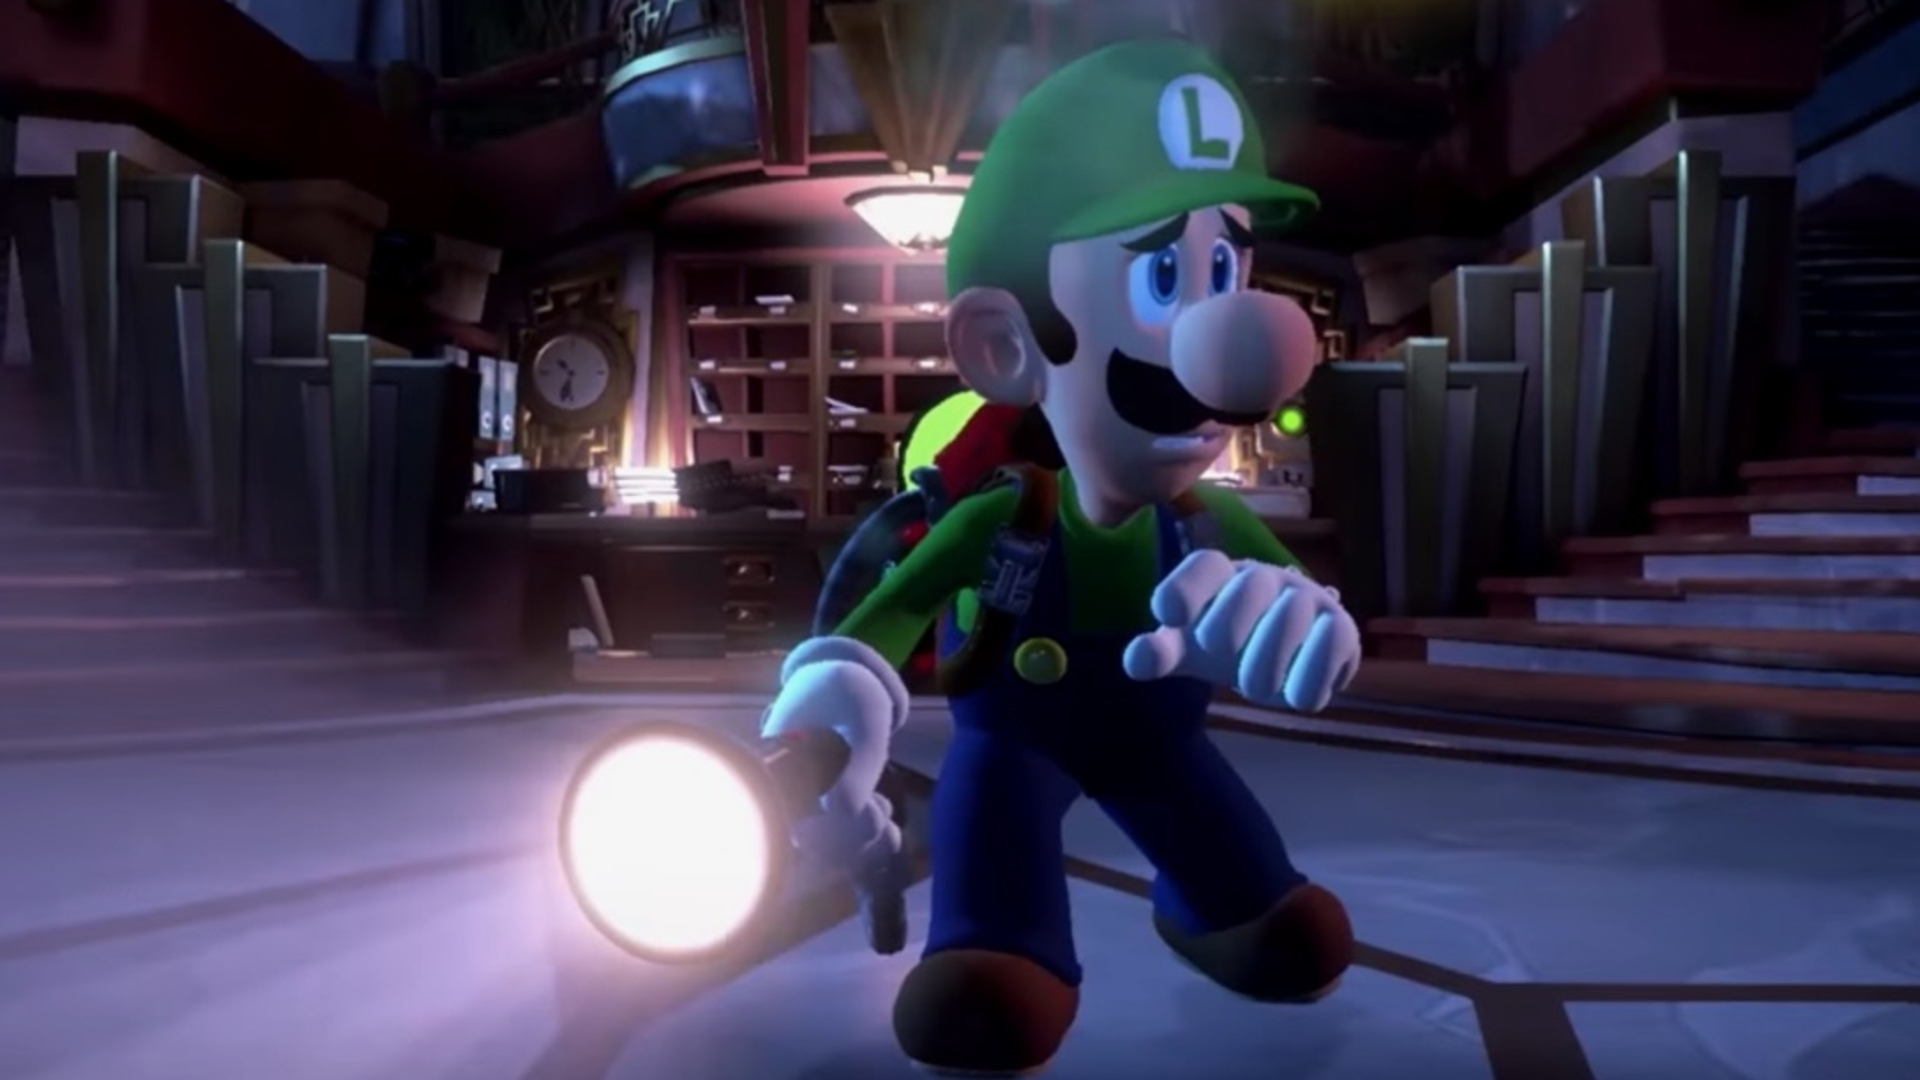 Luigis Mansion 3 Announced For Nintendo Switch